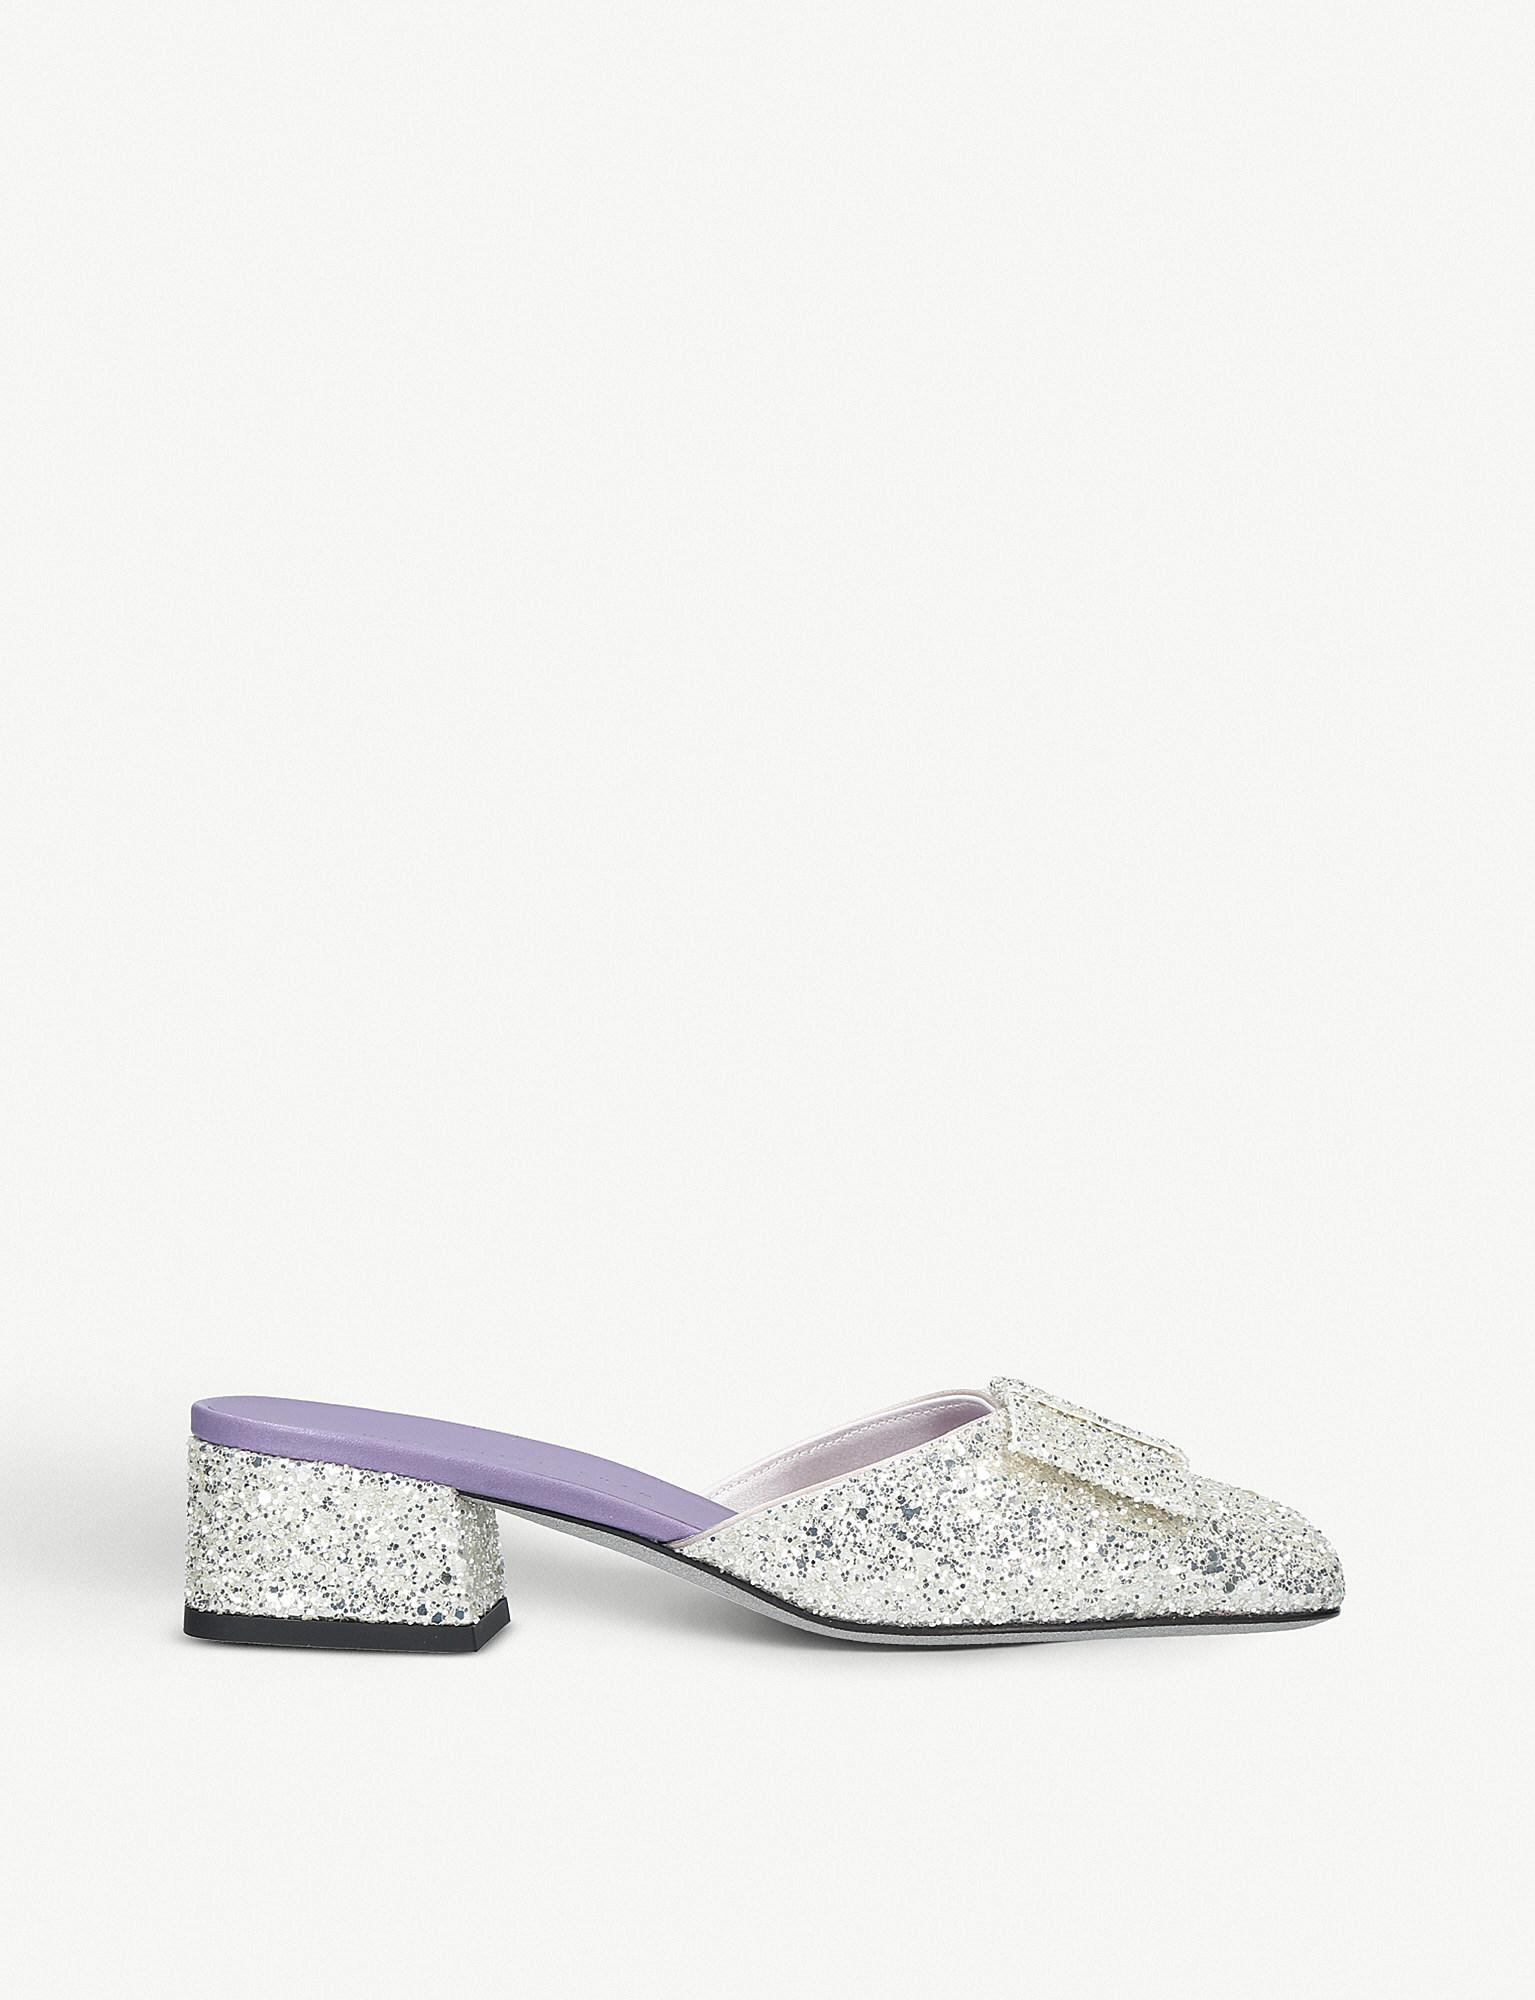 Recommend Online Victoria Beckham Harper glitter mules Discount Pre Order View Clearance With Credit Card For Sale CtUHC4g